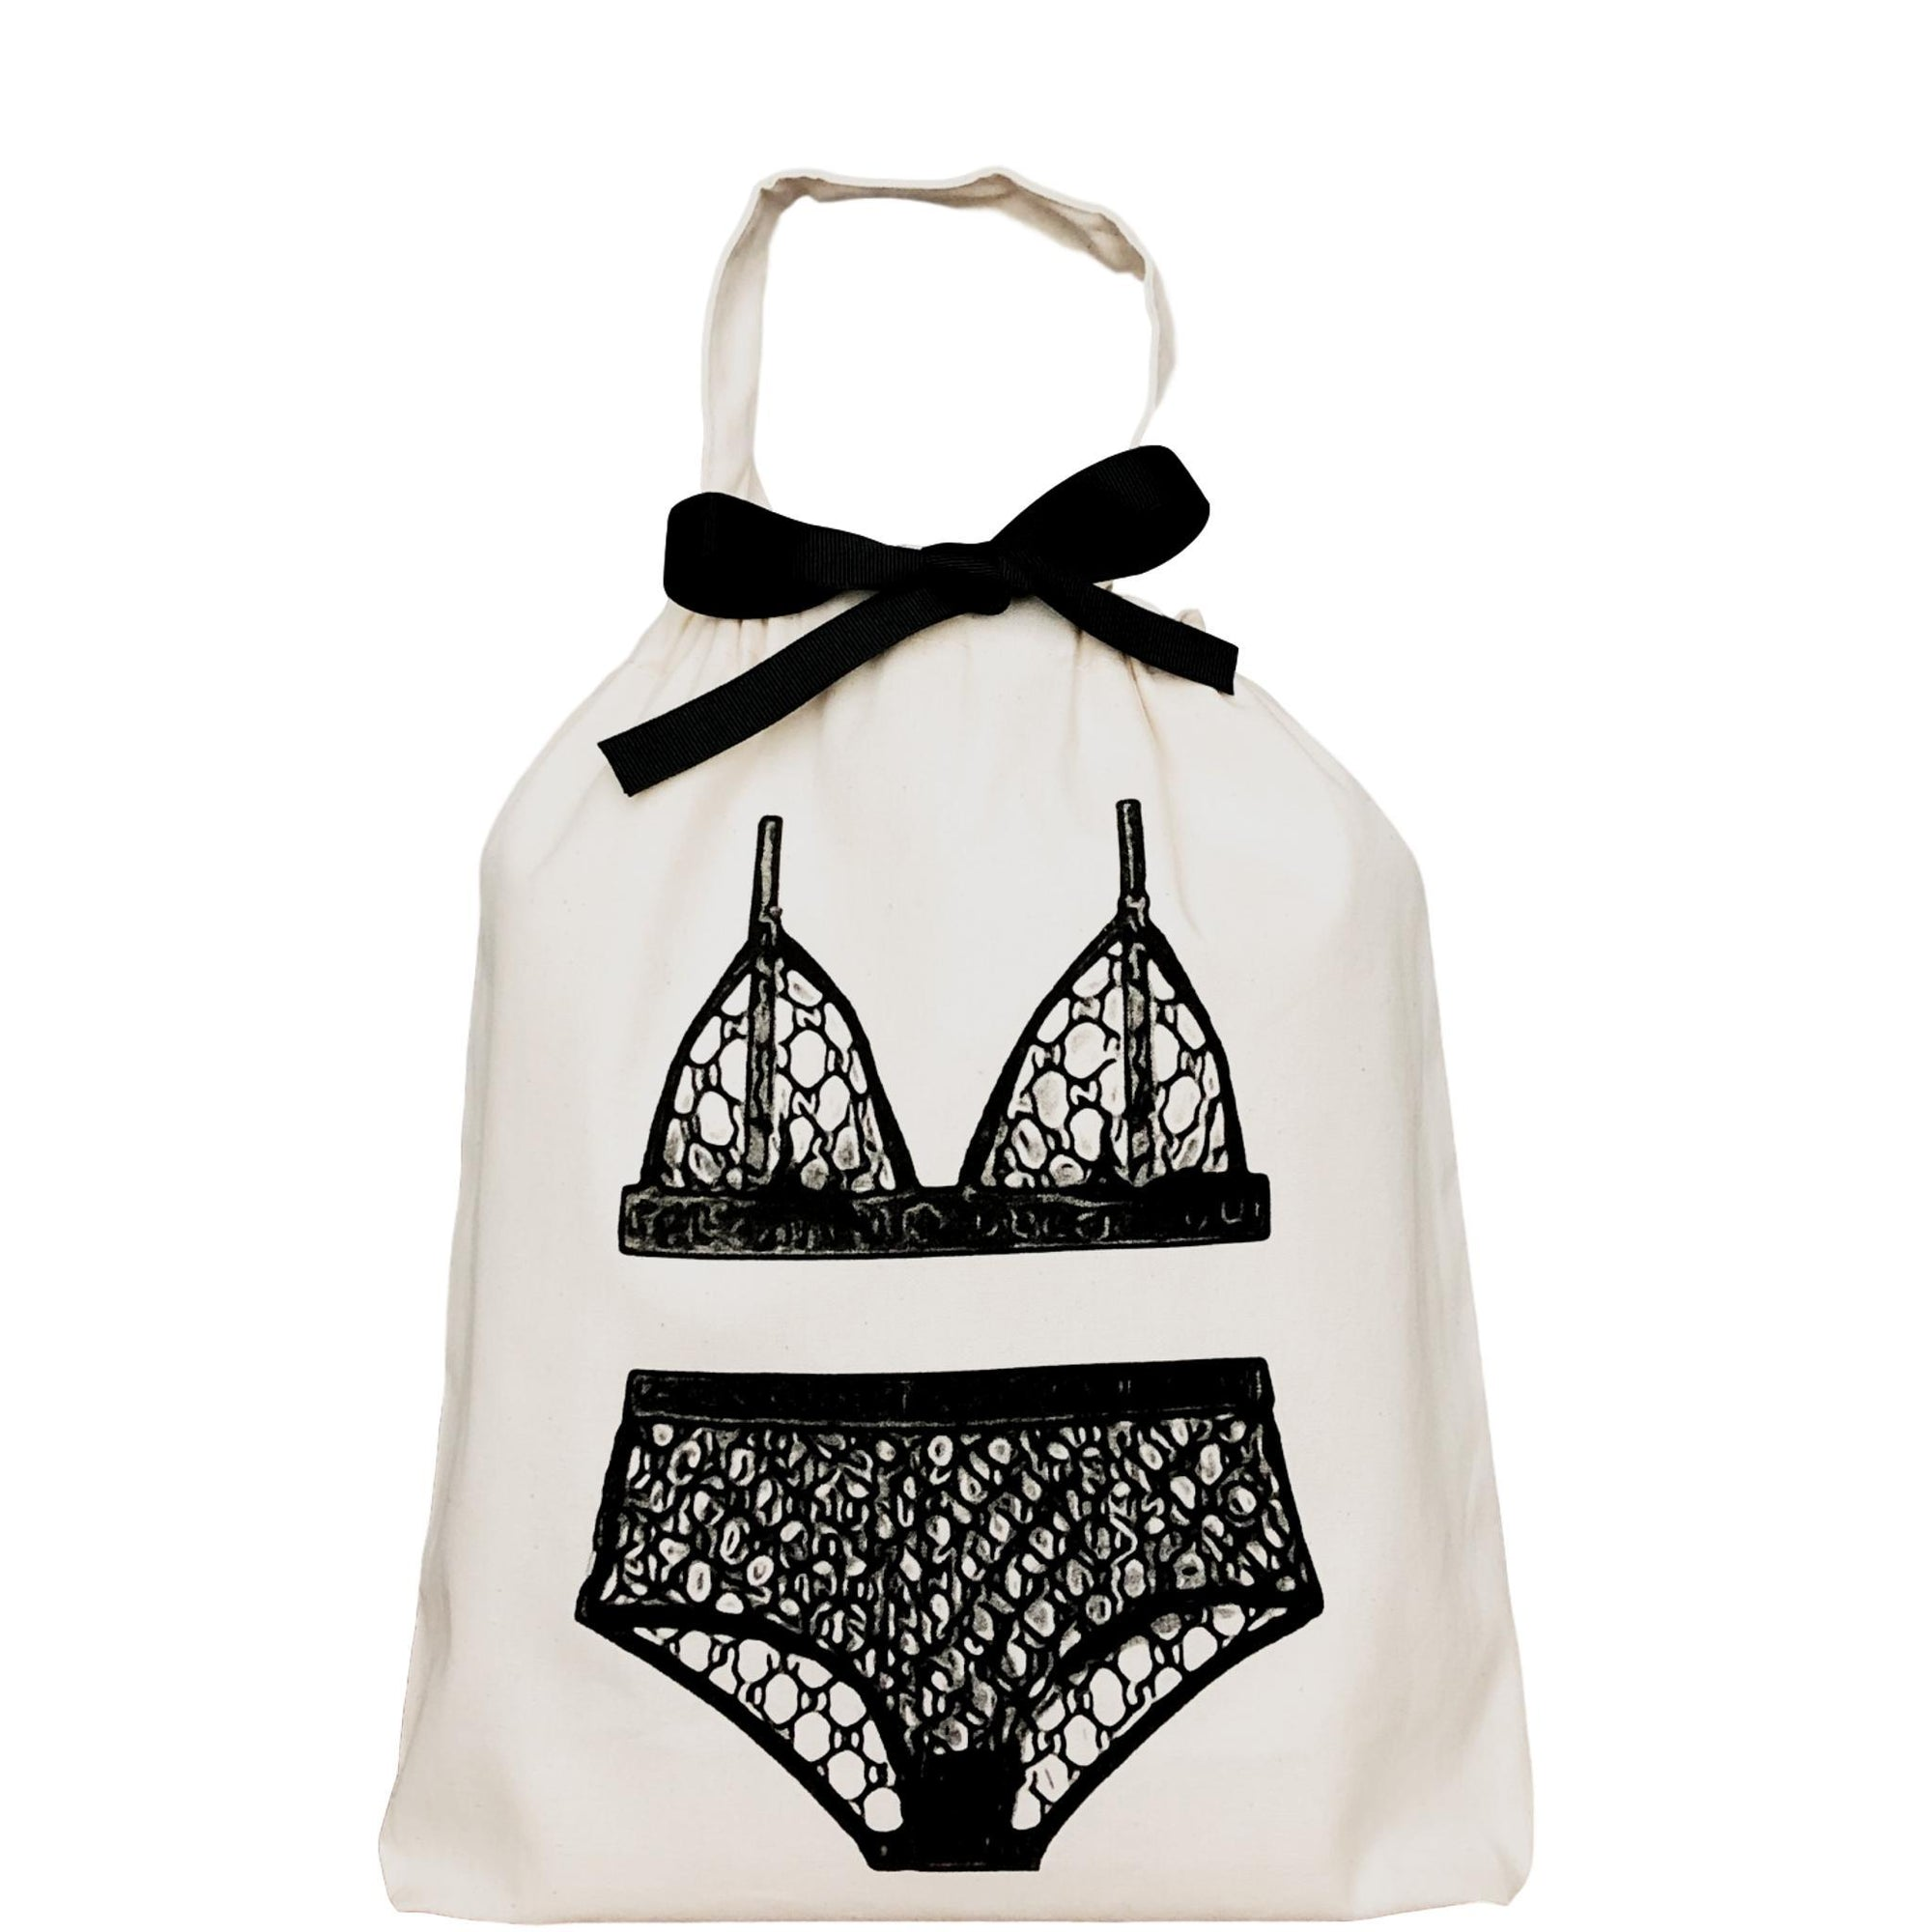 London Lingerie Bag - Bag-all Paris